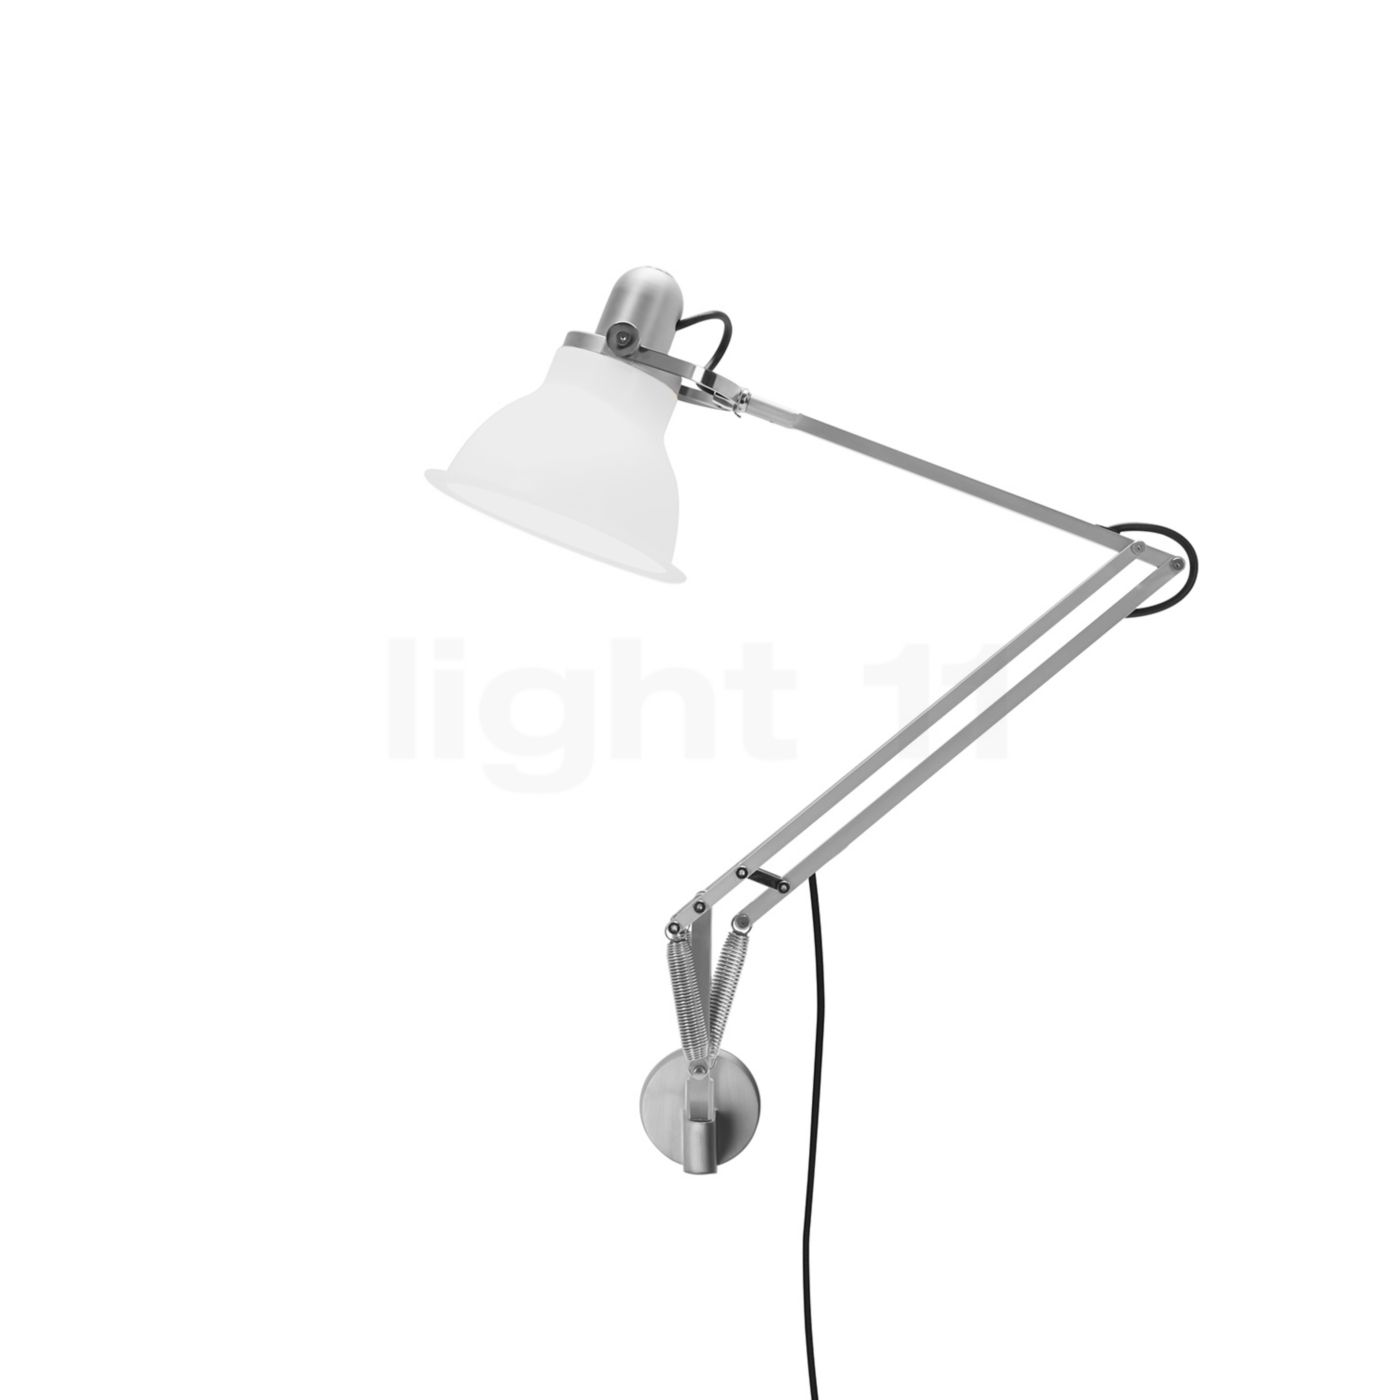 anglepoise type 1228 lampe de bureau avec fixation murale. Black Bedroom Furniture Sets. Home Design Ideas